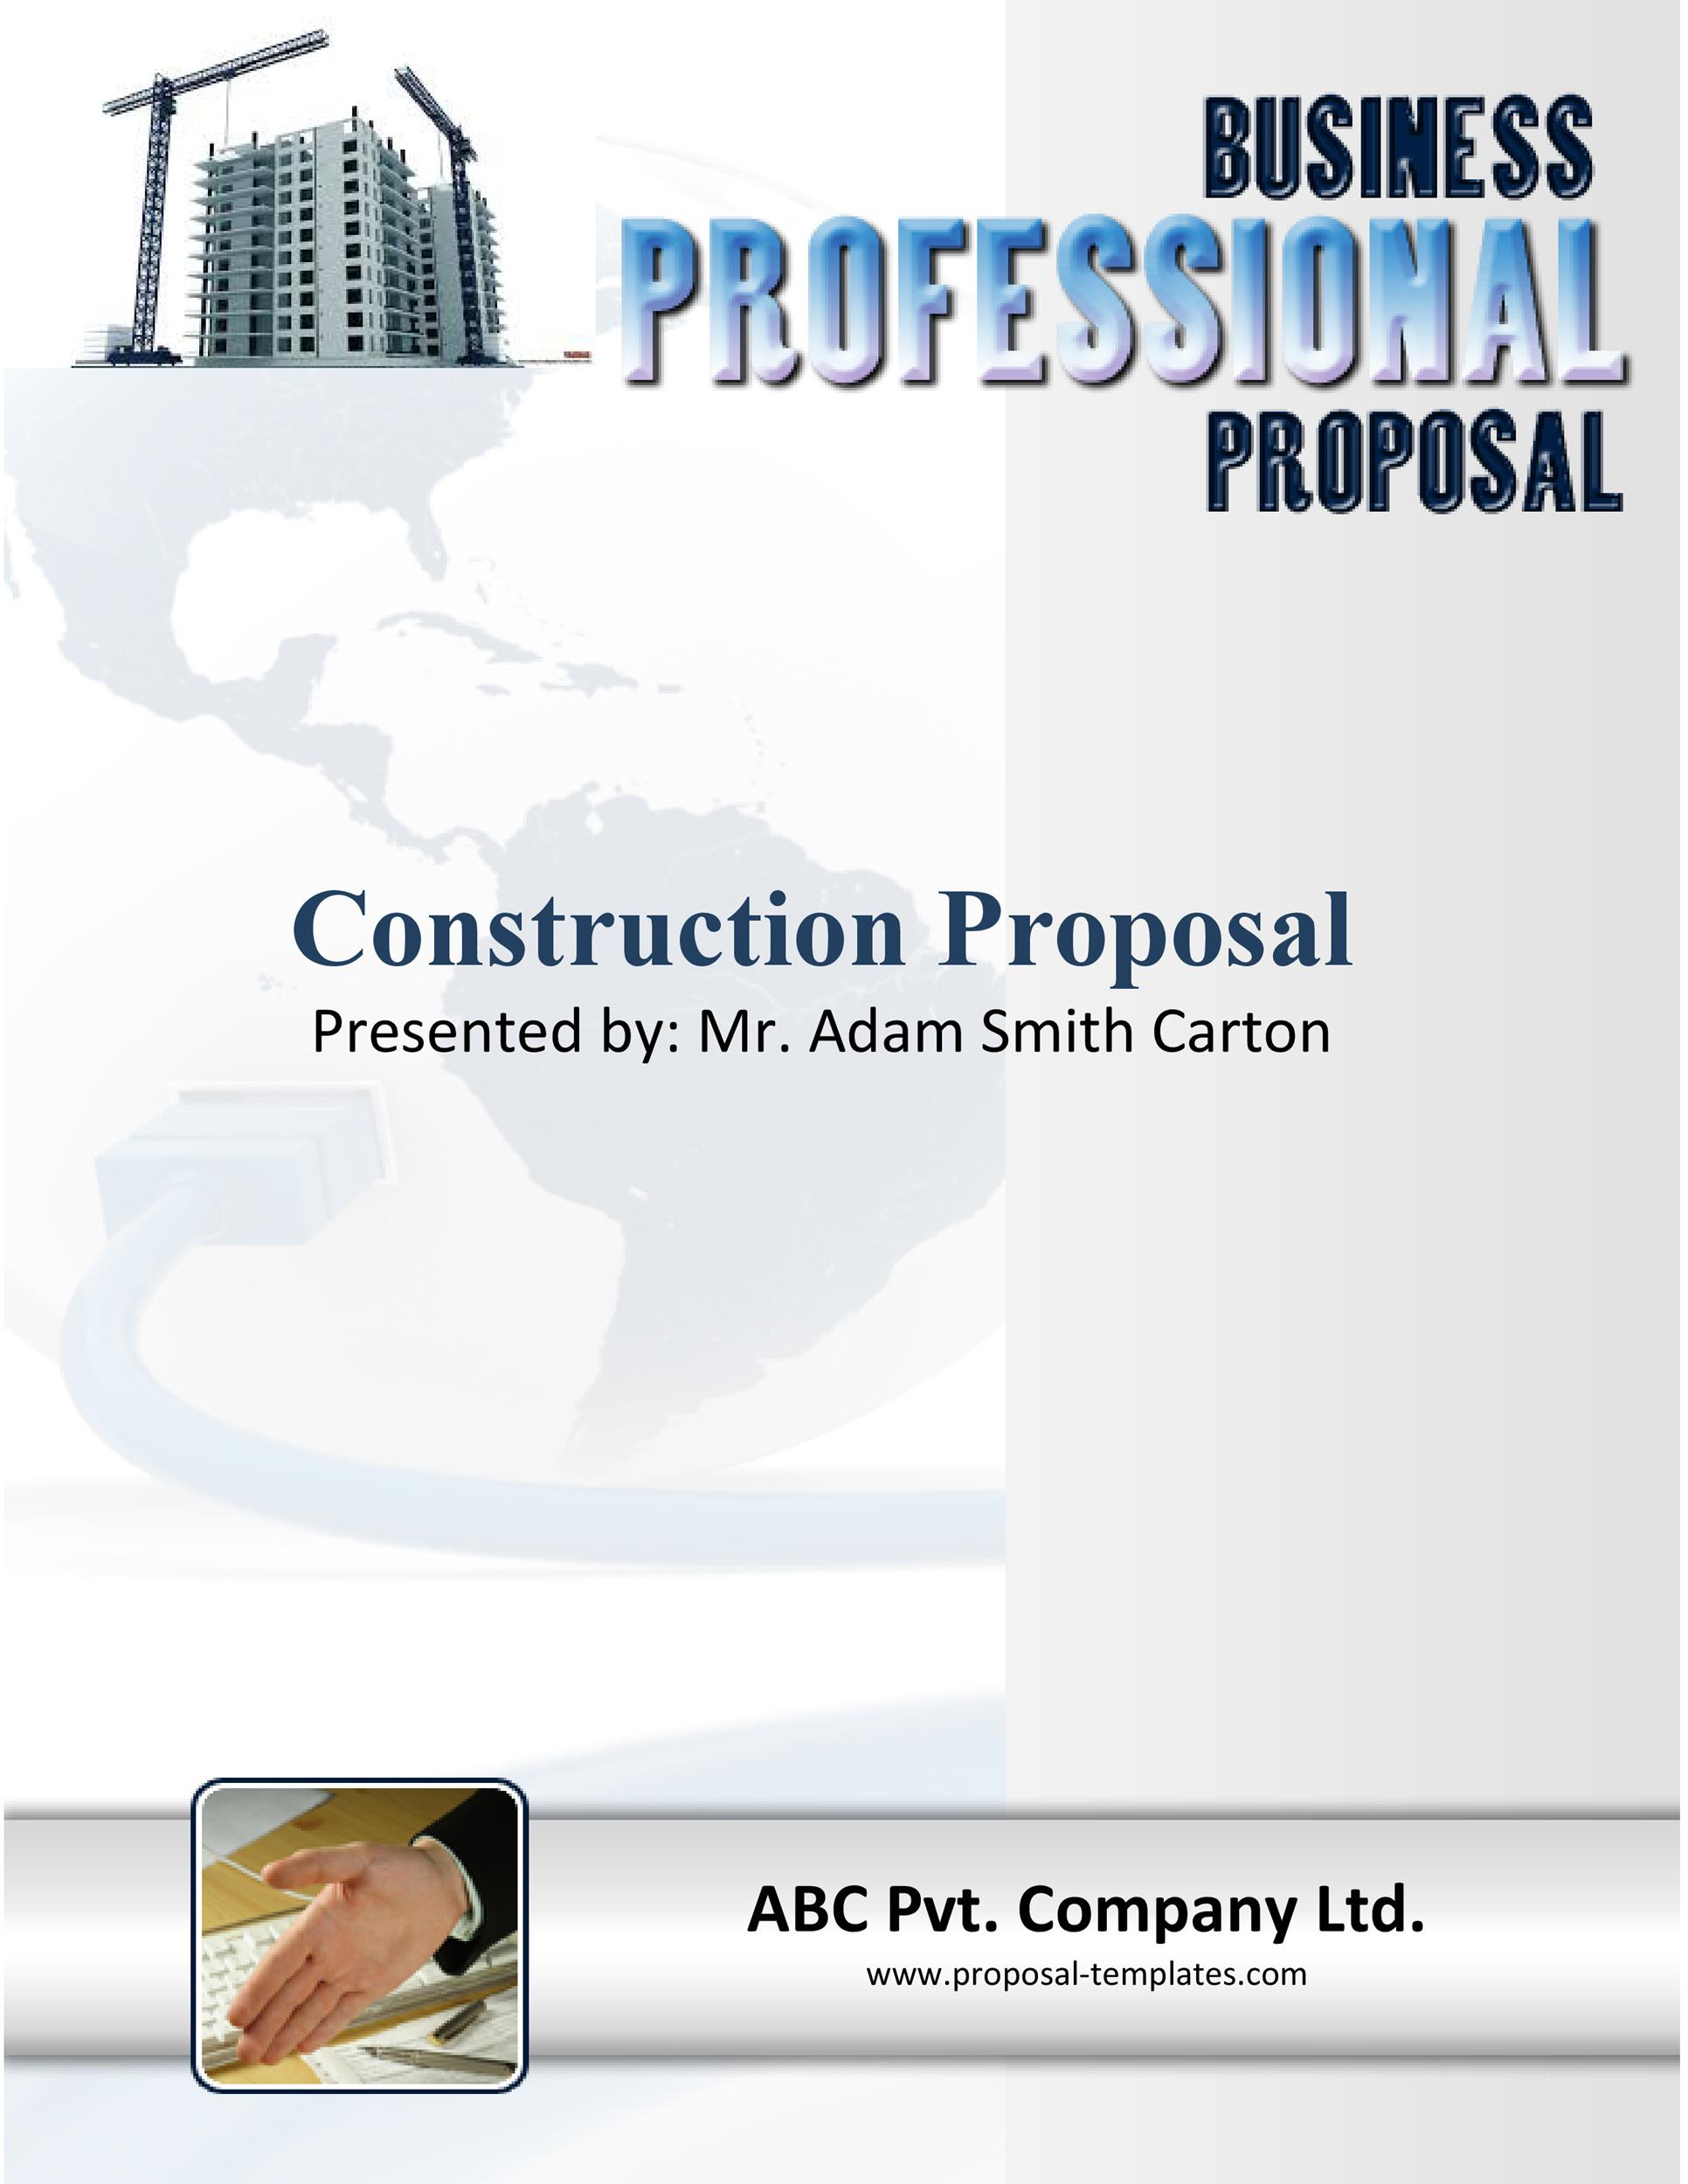 Construction Proposal